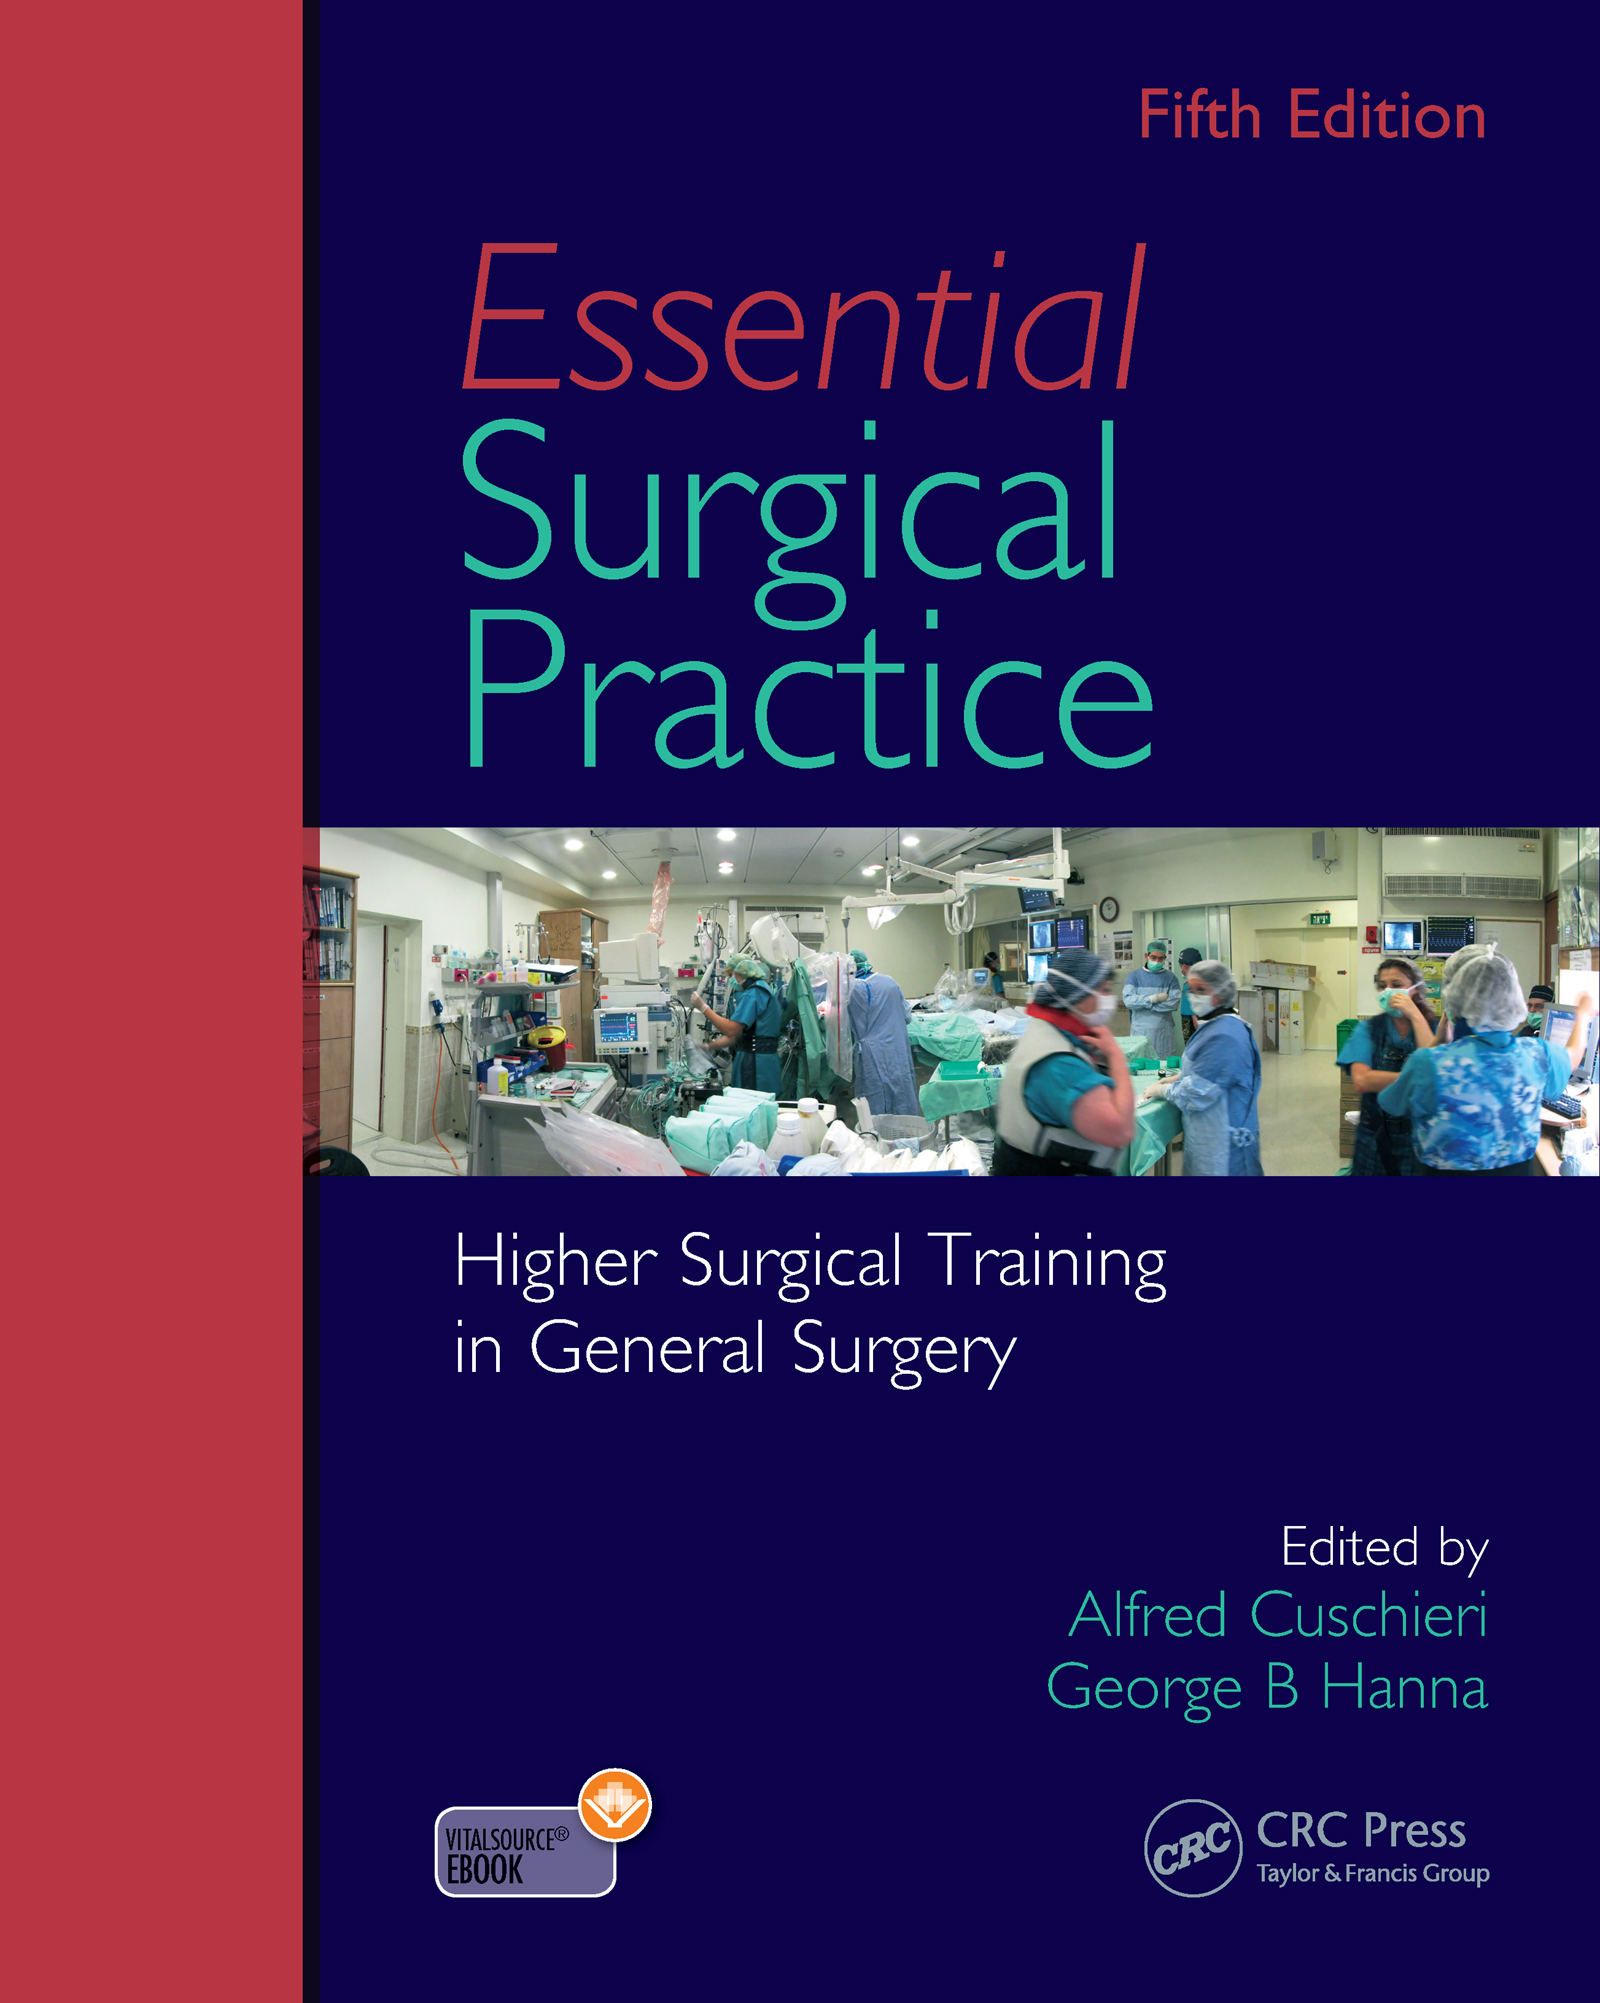 Essential Surgical Practice: Higher Surgical Training in General Surgery, Fifth Edition book cover